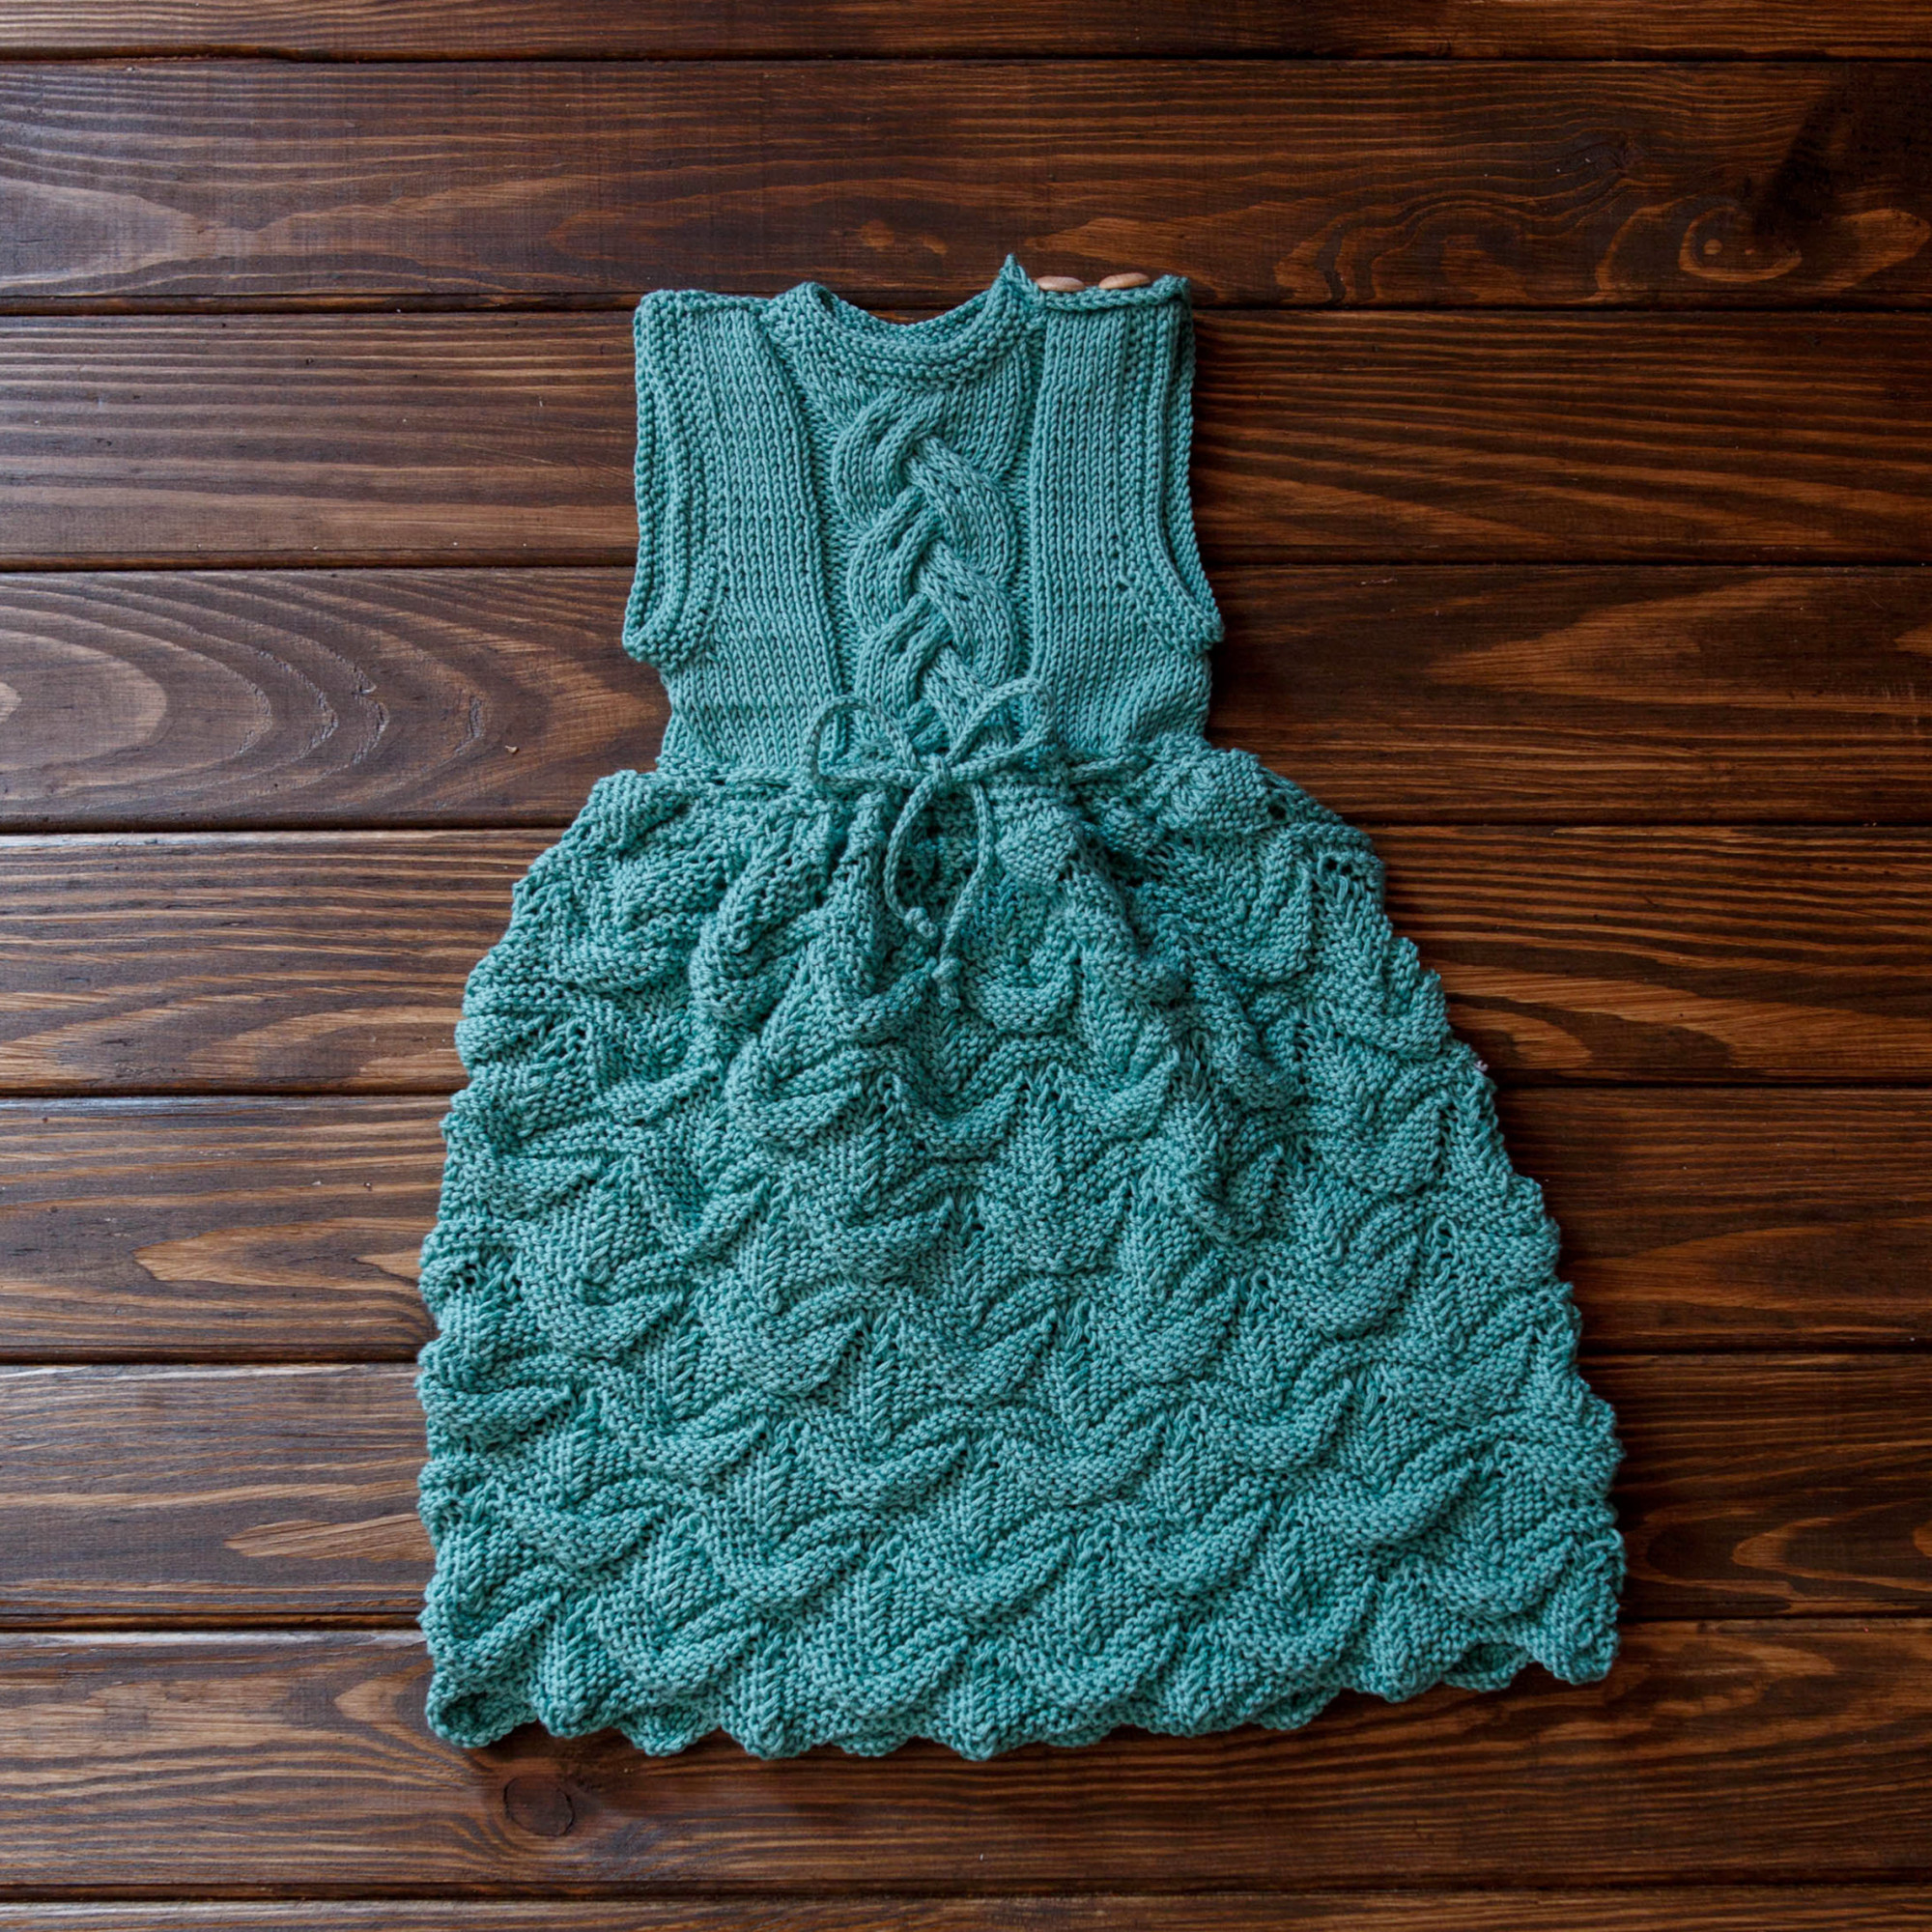 Sleeveless Baby Girl Dress Forest Color Wooden Buttons Size 6-9